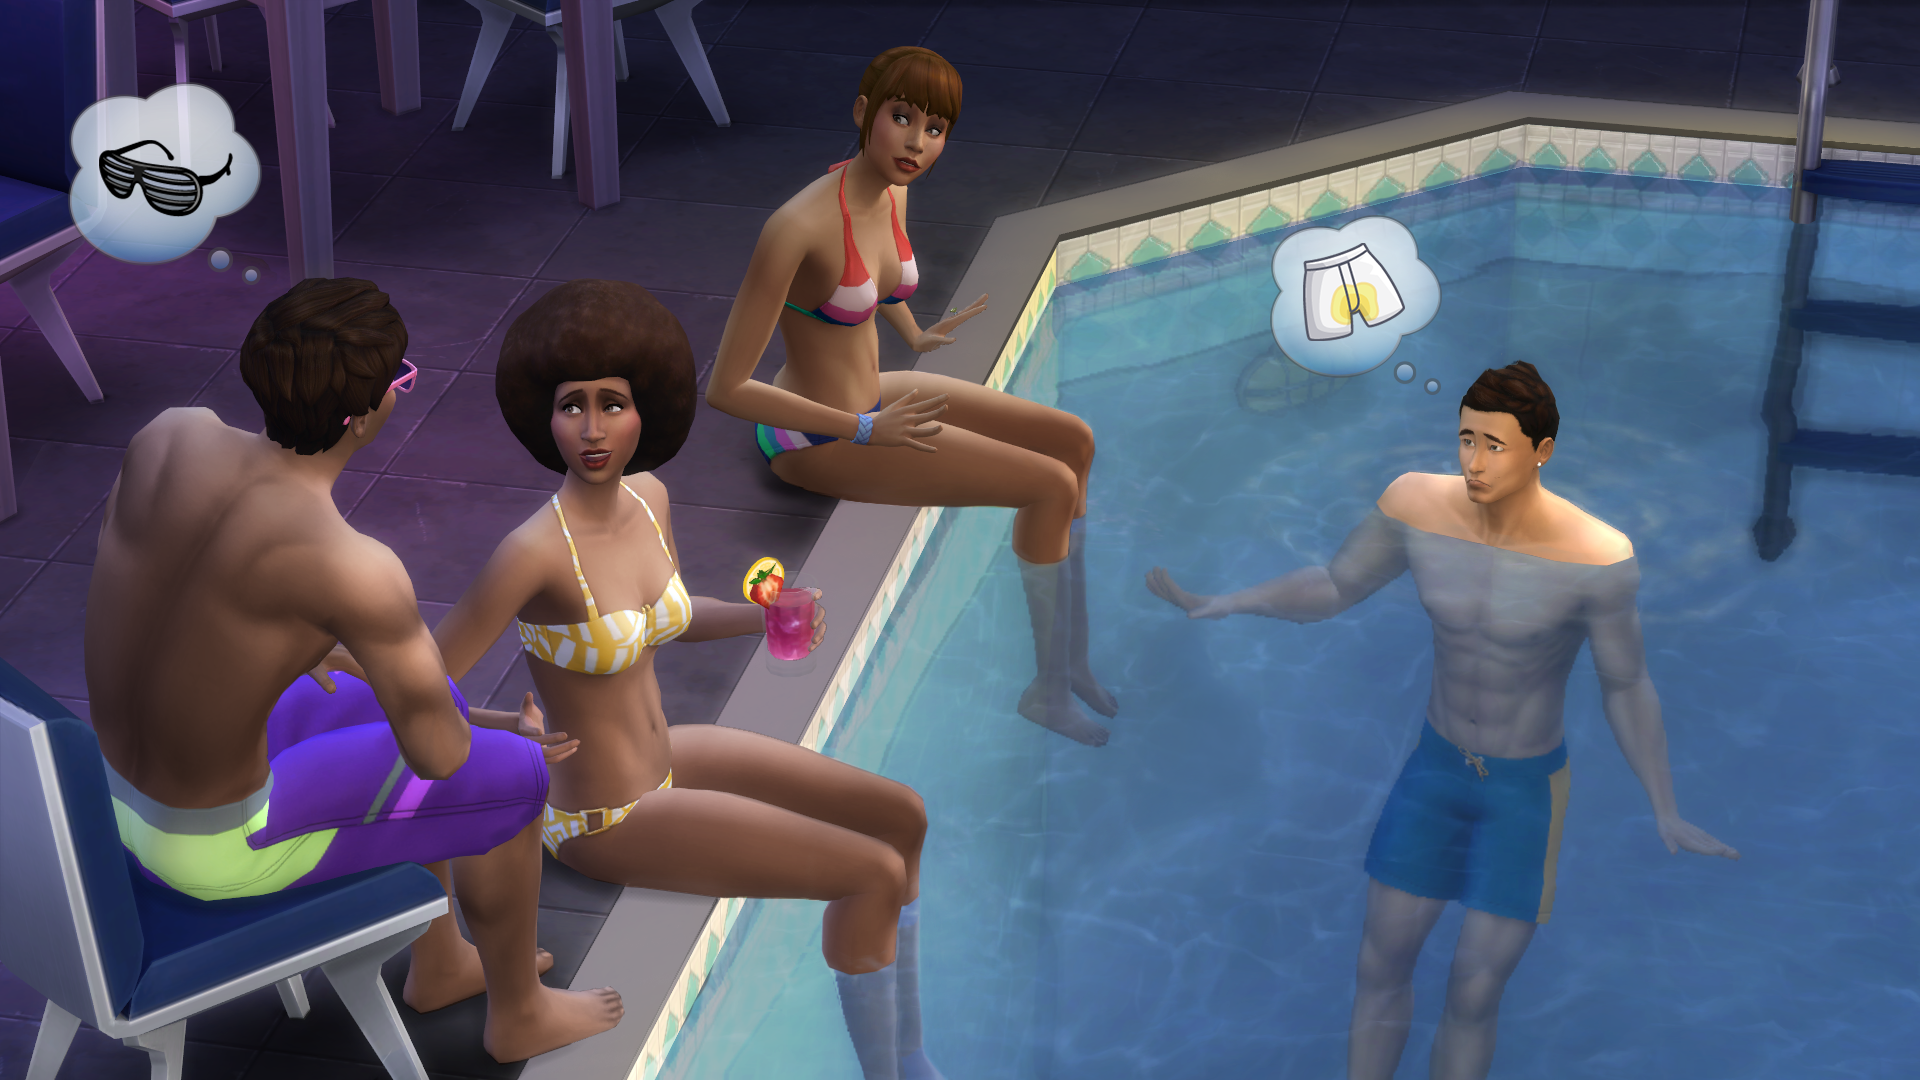 The Sims 4 Gets Swimming Pools (For Free) Today